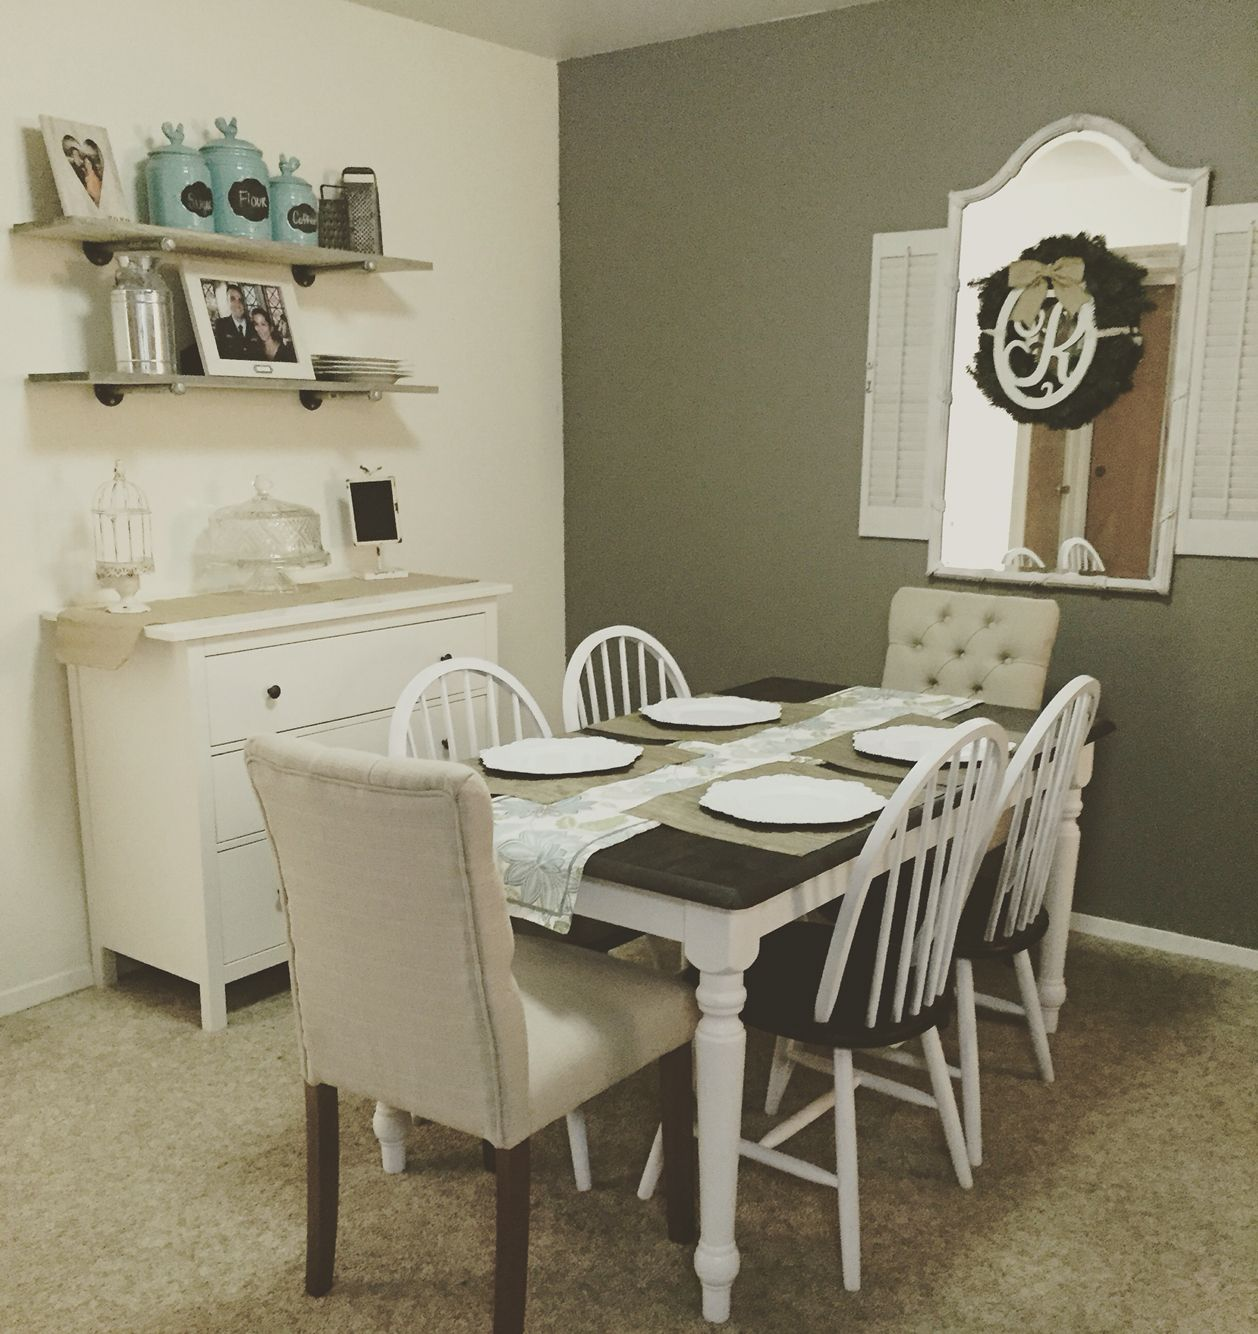 Decor On A Budget In Military Housing U2026